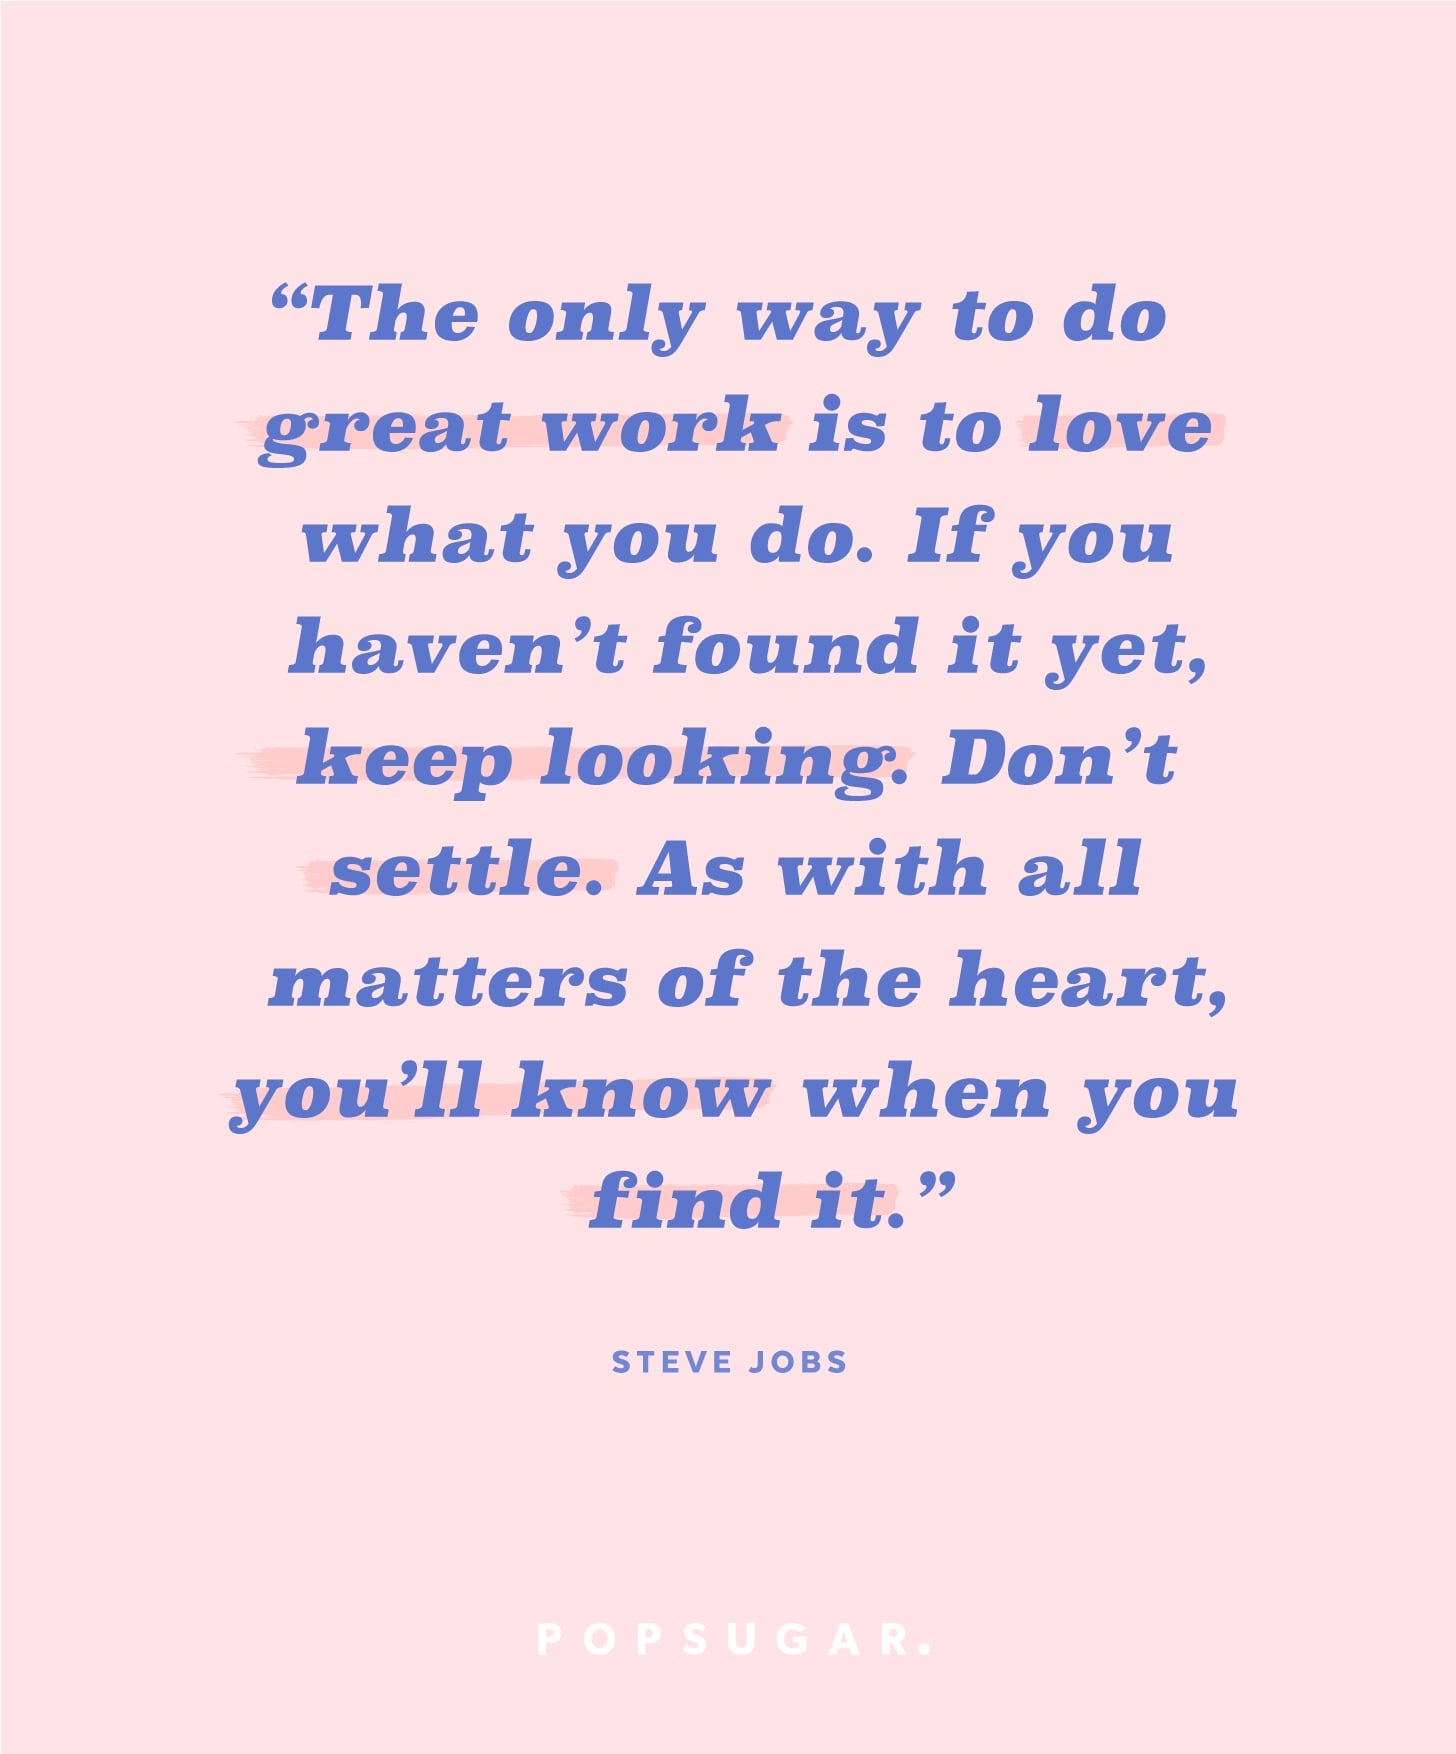 Relationship quotes for looking 20 Relationship